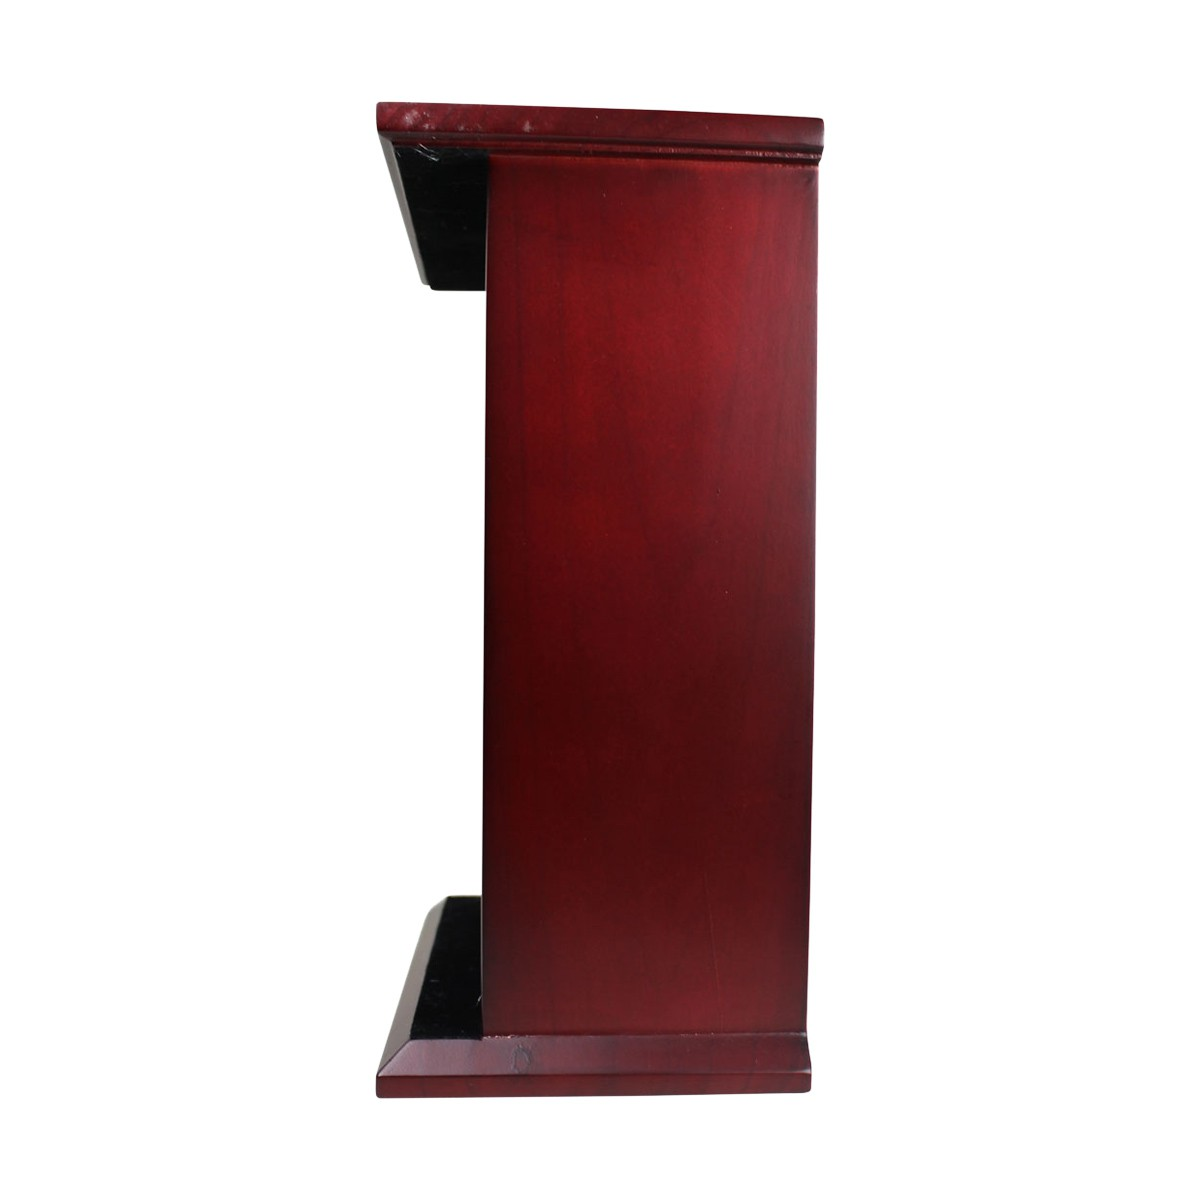 Display Boxes Country Pine Ornament Display 7.5H Pine Ornament Display Boxes Ornament Display Box Pine Ornament Boxes